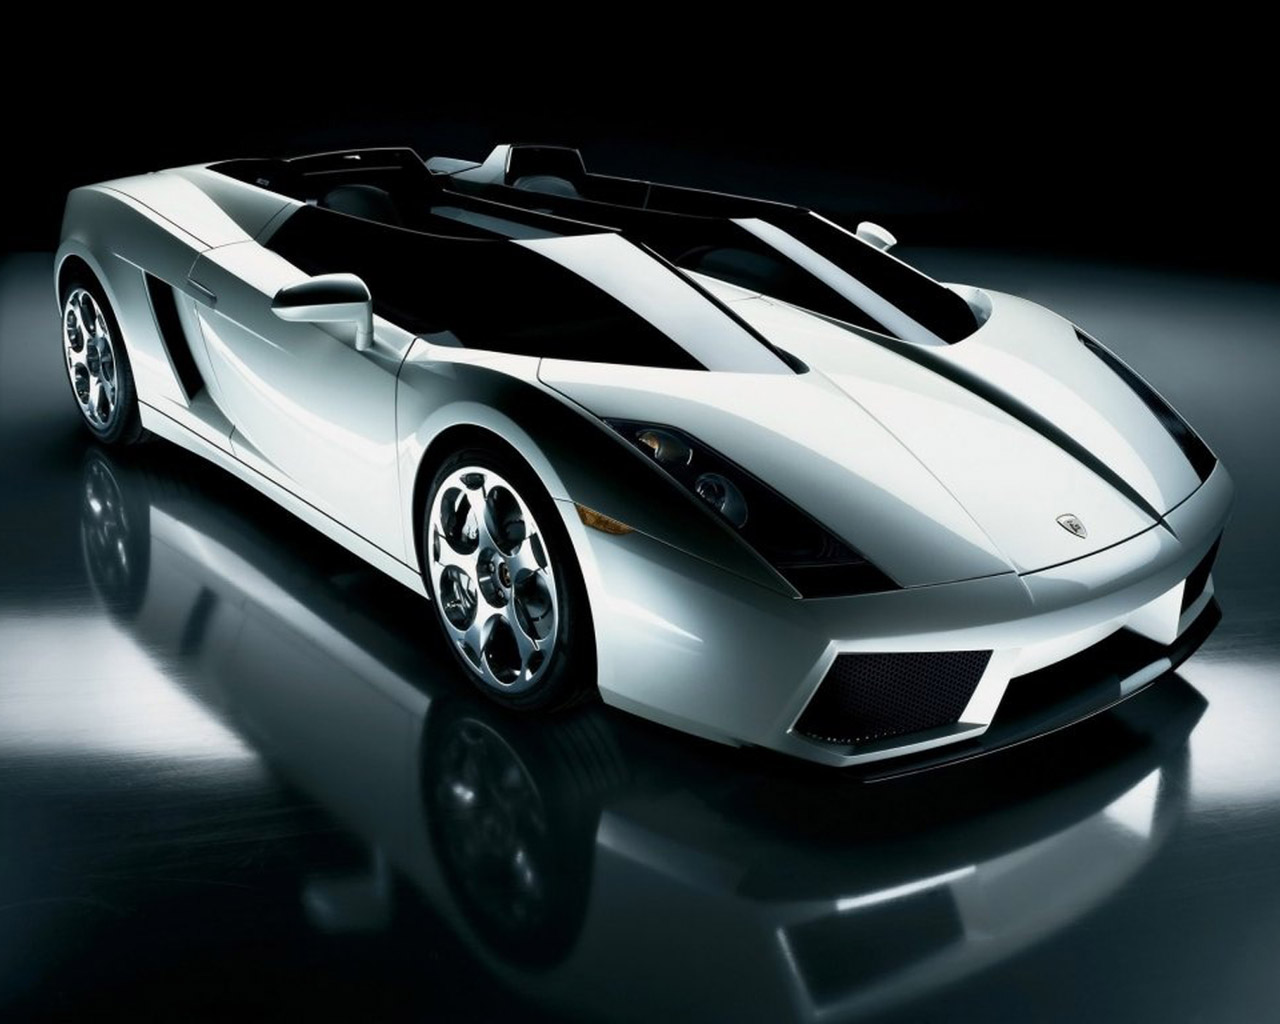 auto sport 2011: wide wallpapers cars and girls